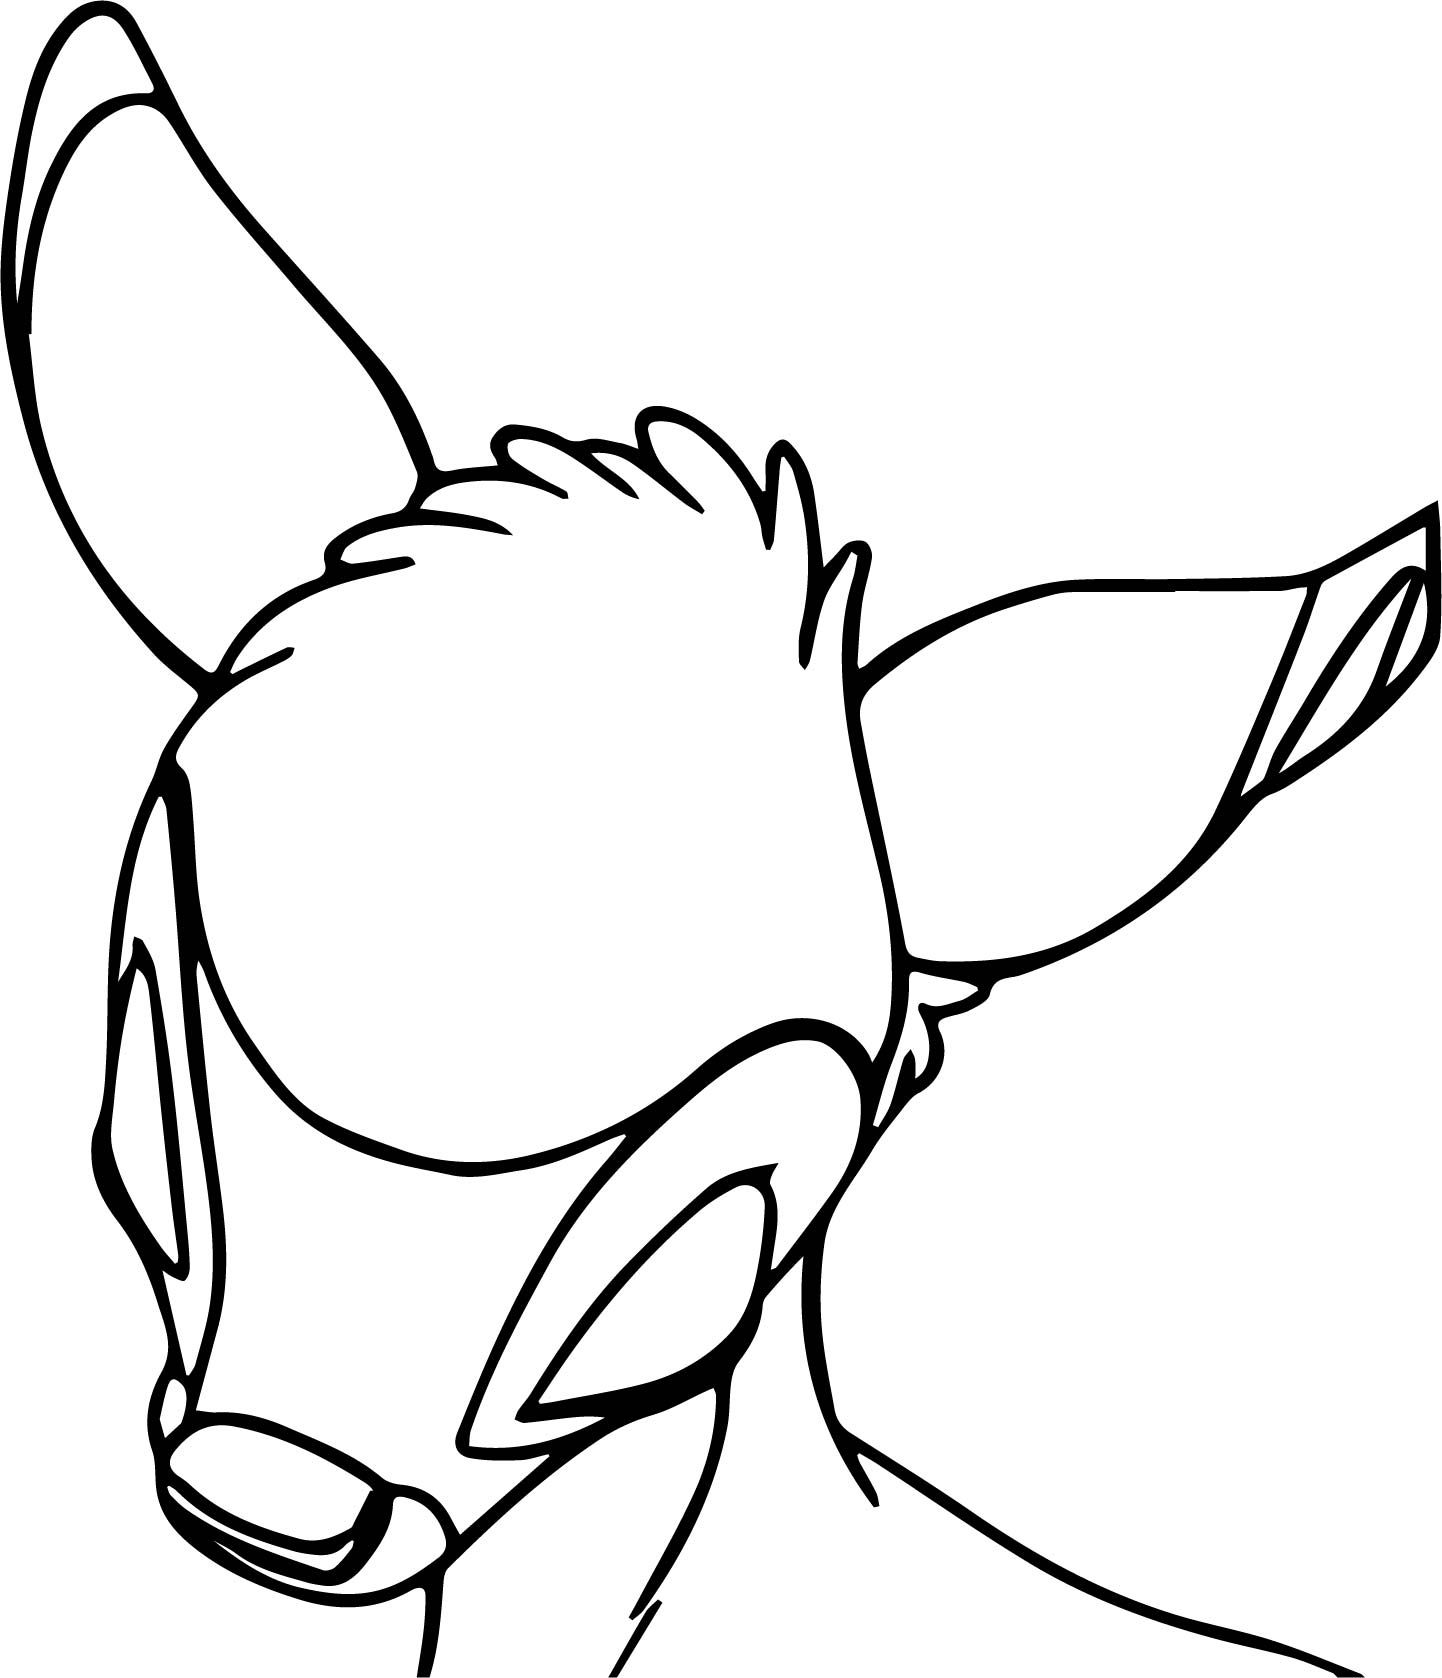 Bambi Head Sleep Coloring Pages | wecoloringpage | Pinterest